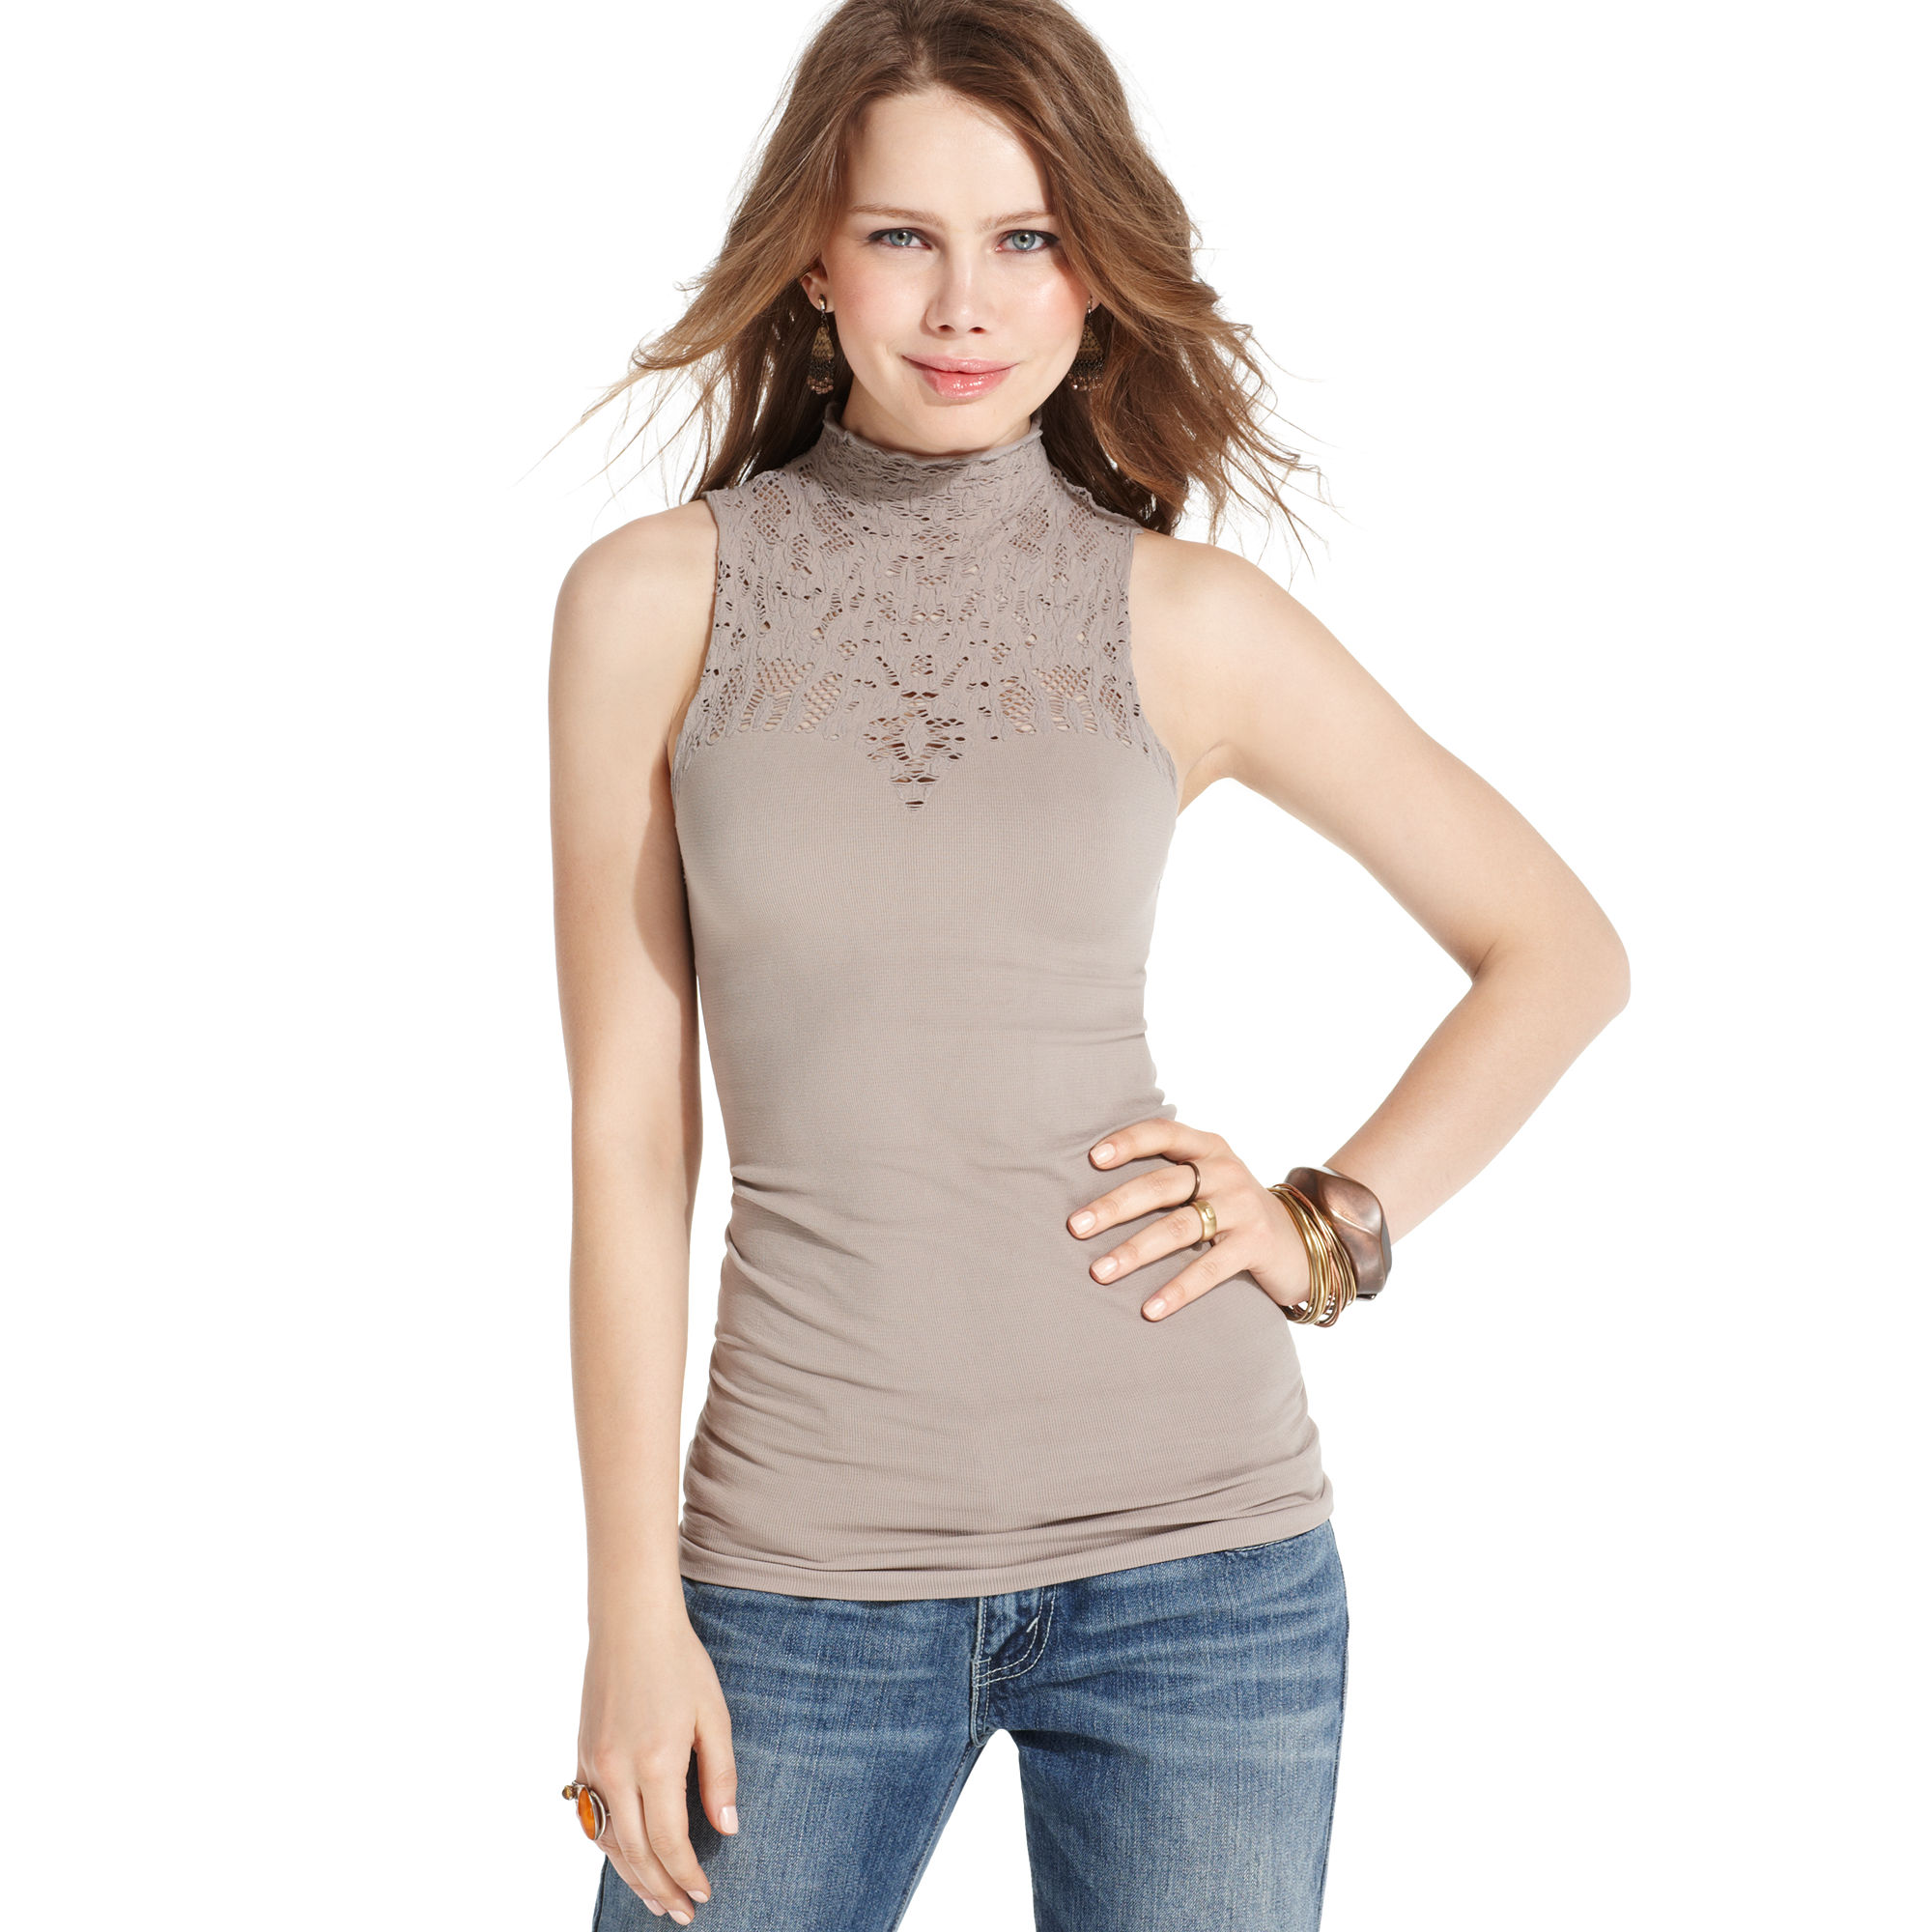 Free people sleeveless lace mock turtleneck in gray smoke for Sleeveless mock turtleneck shirts